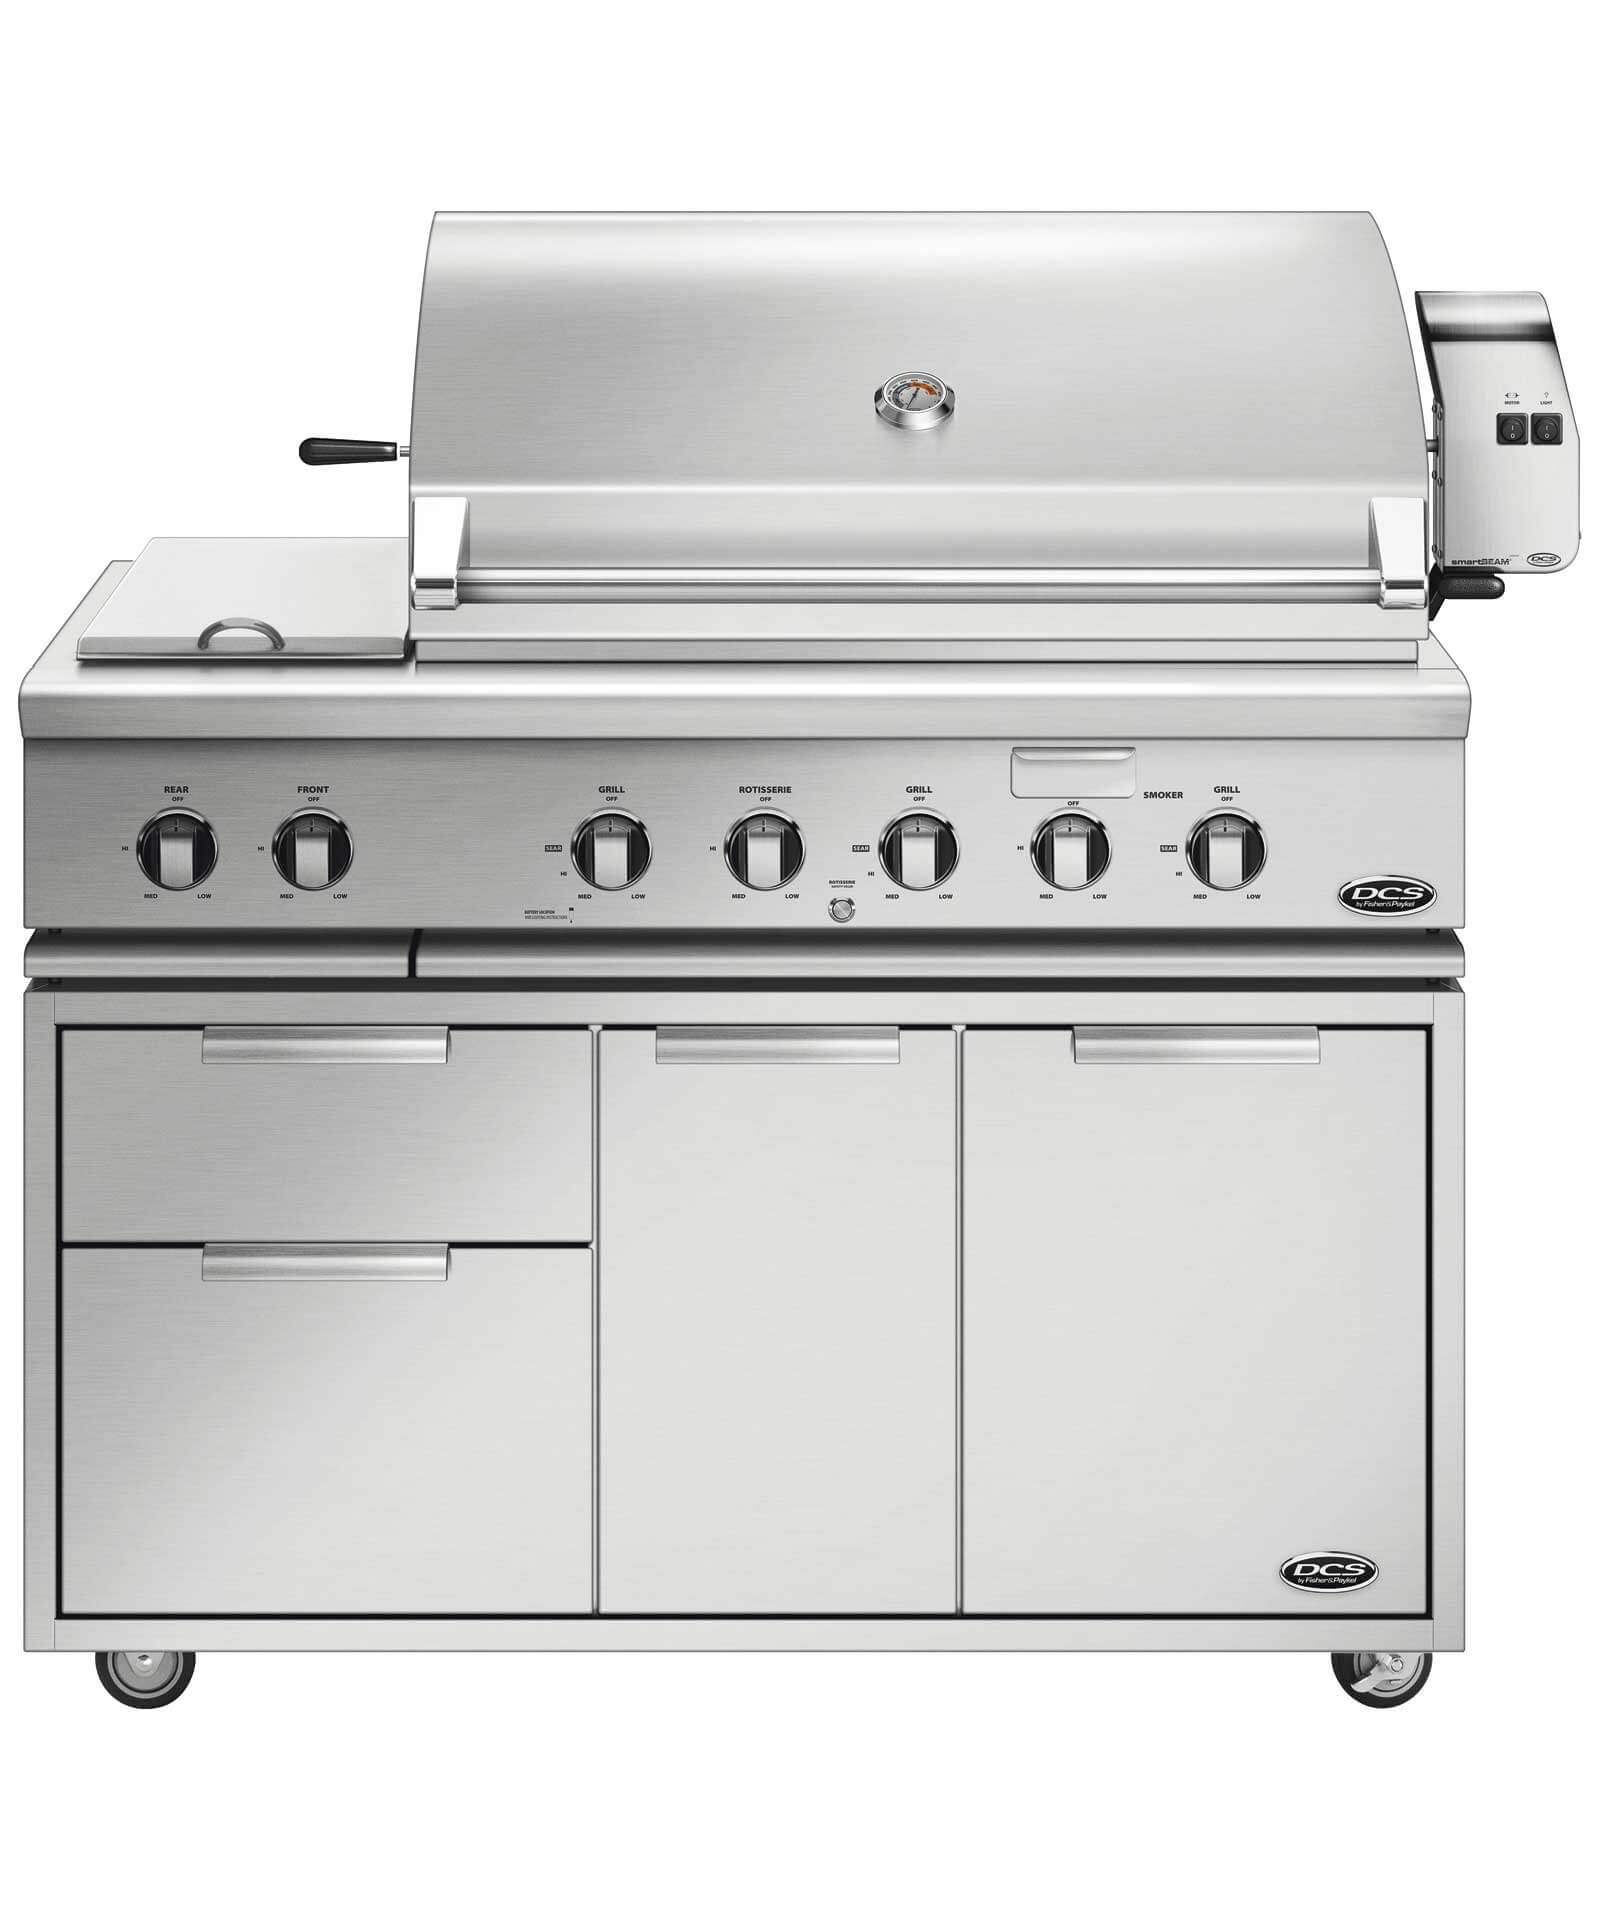 "DCS 48"" Traditional Grill with Rotisserie and Side Burners"